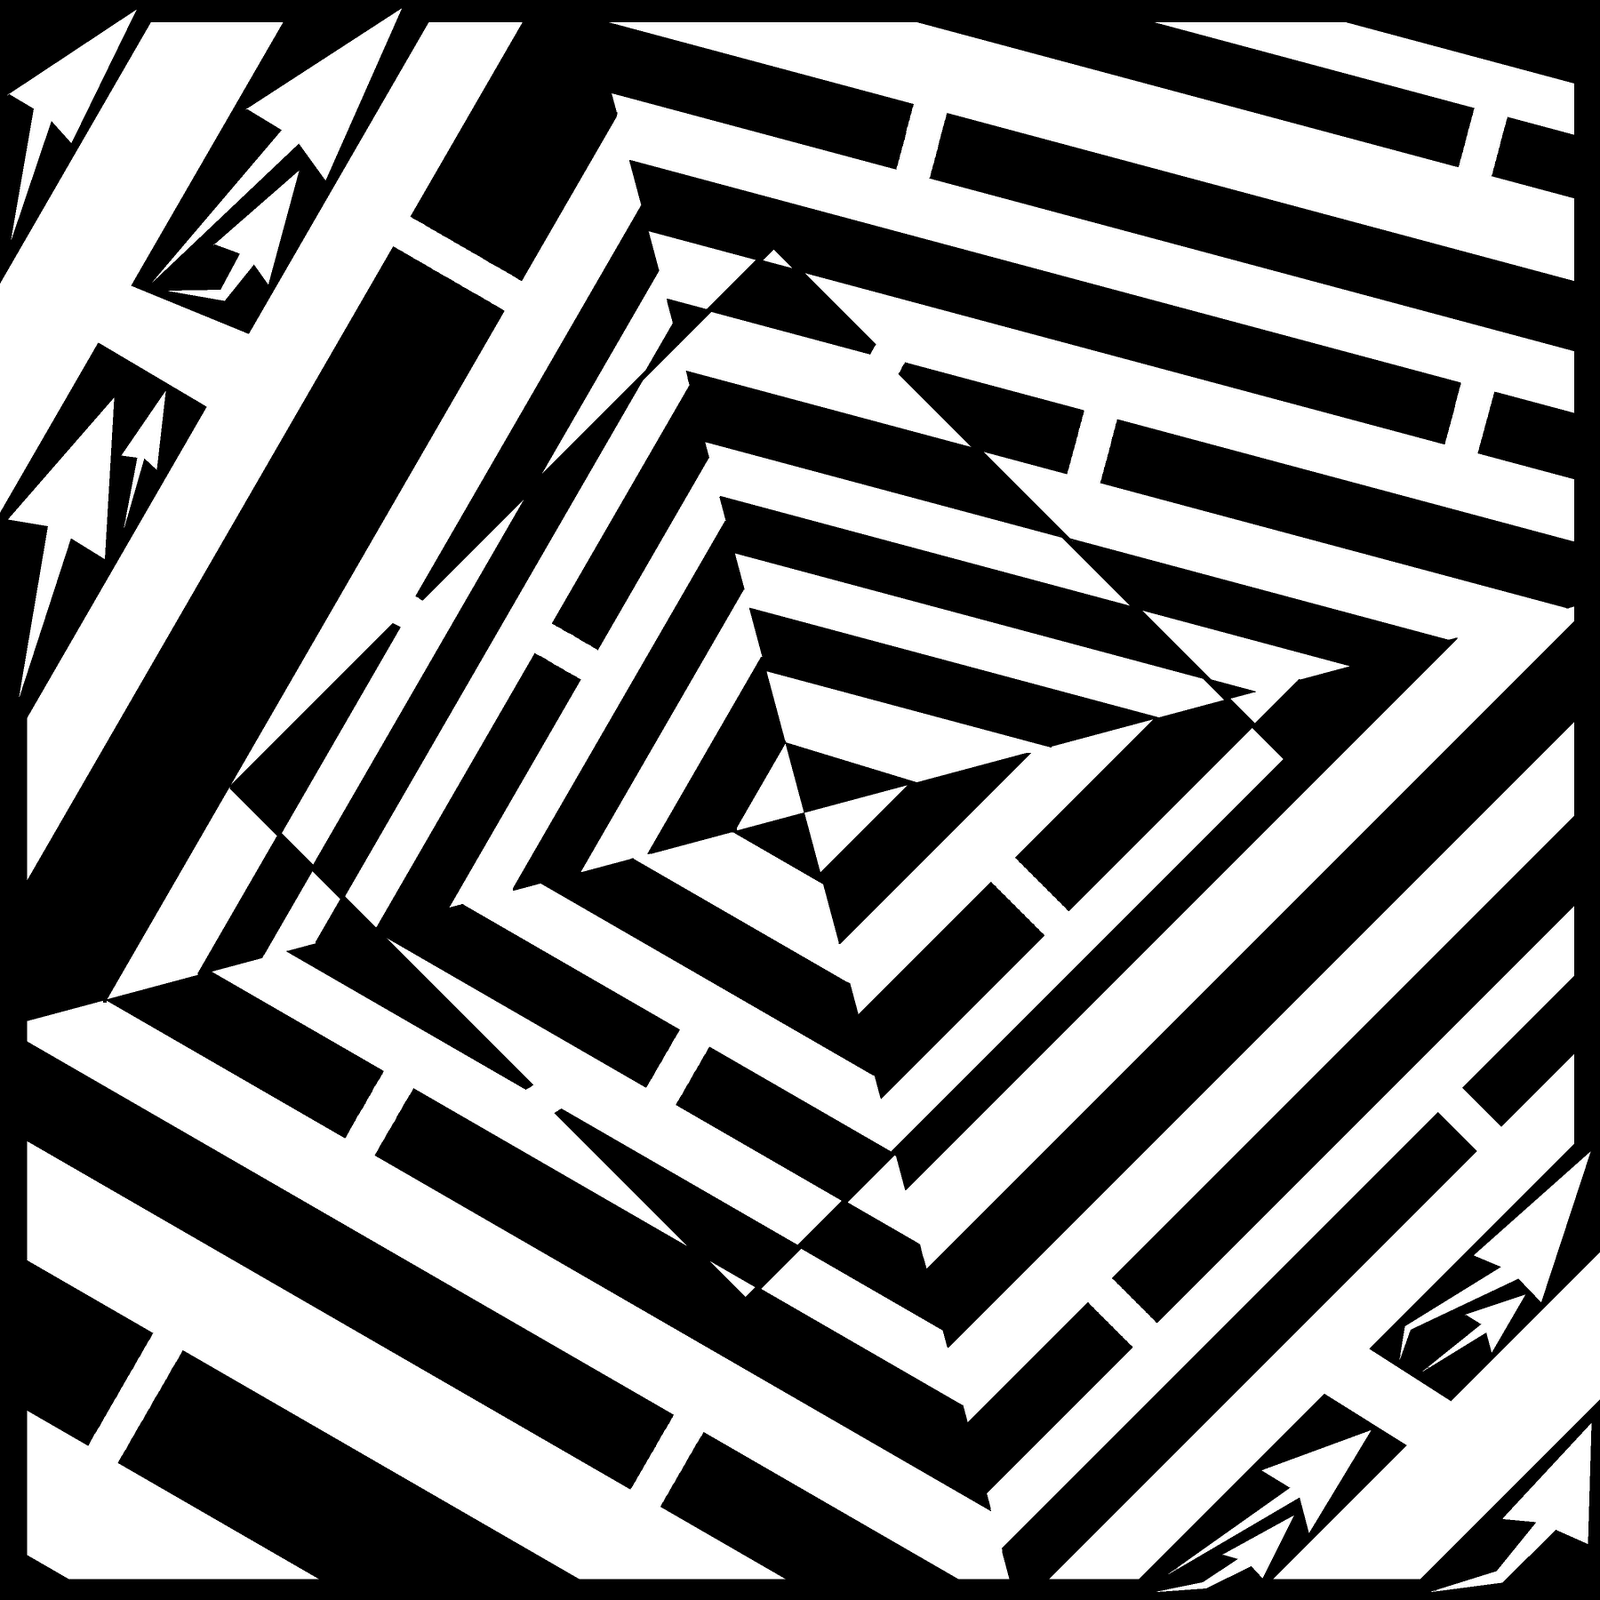 maze square artist optical frimer yonatan falling drawing illusions mazes illusion drawings medium psychedelic 20th uploaded april which